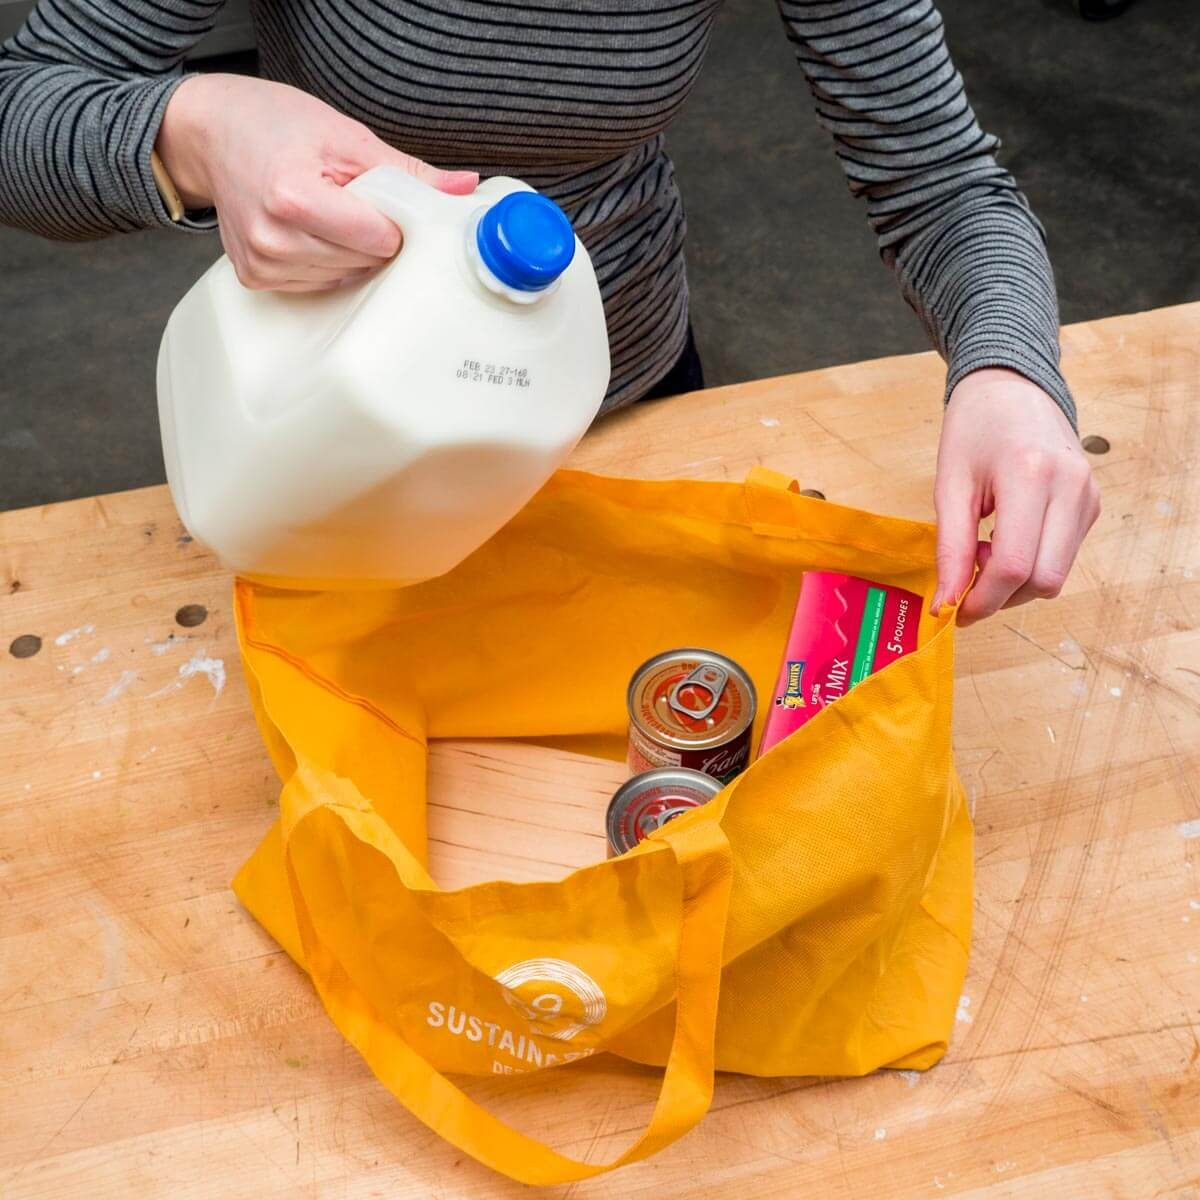 Sturdier reusable grocery bag